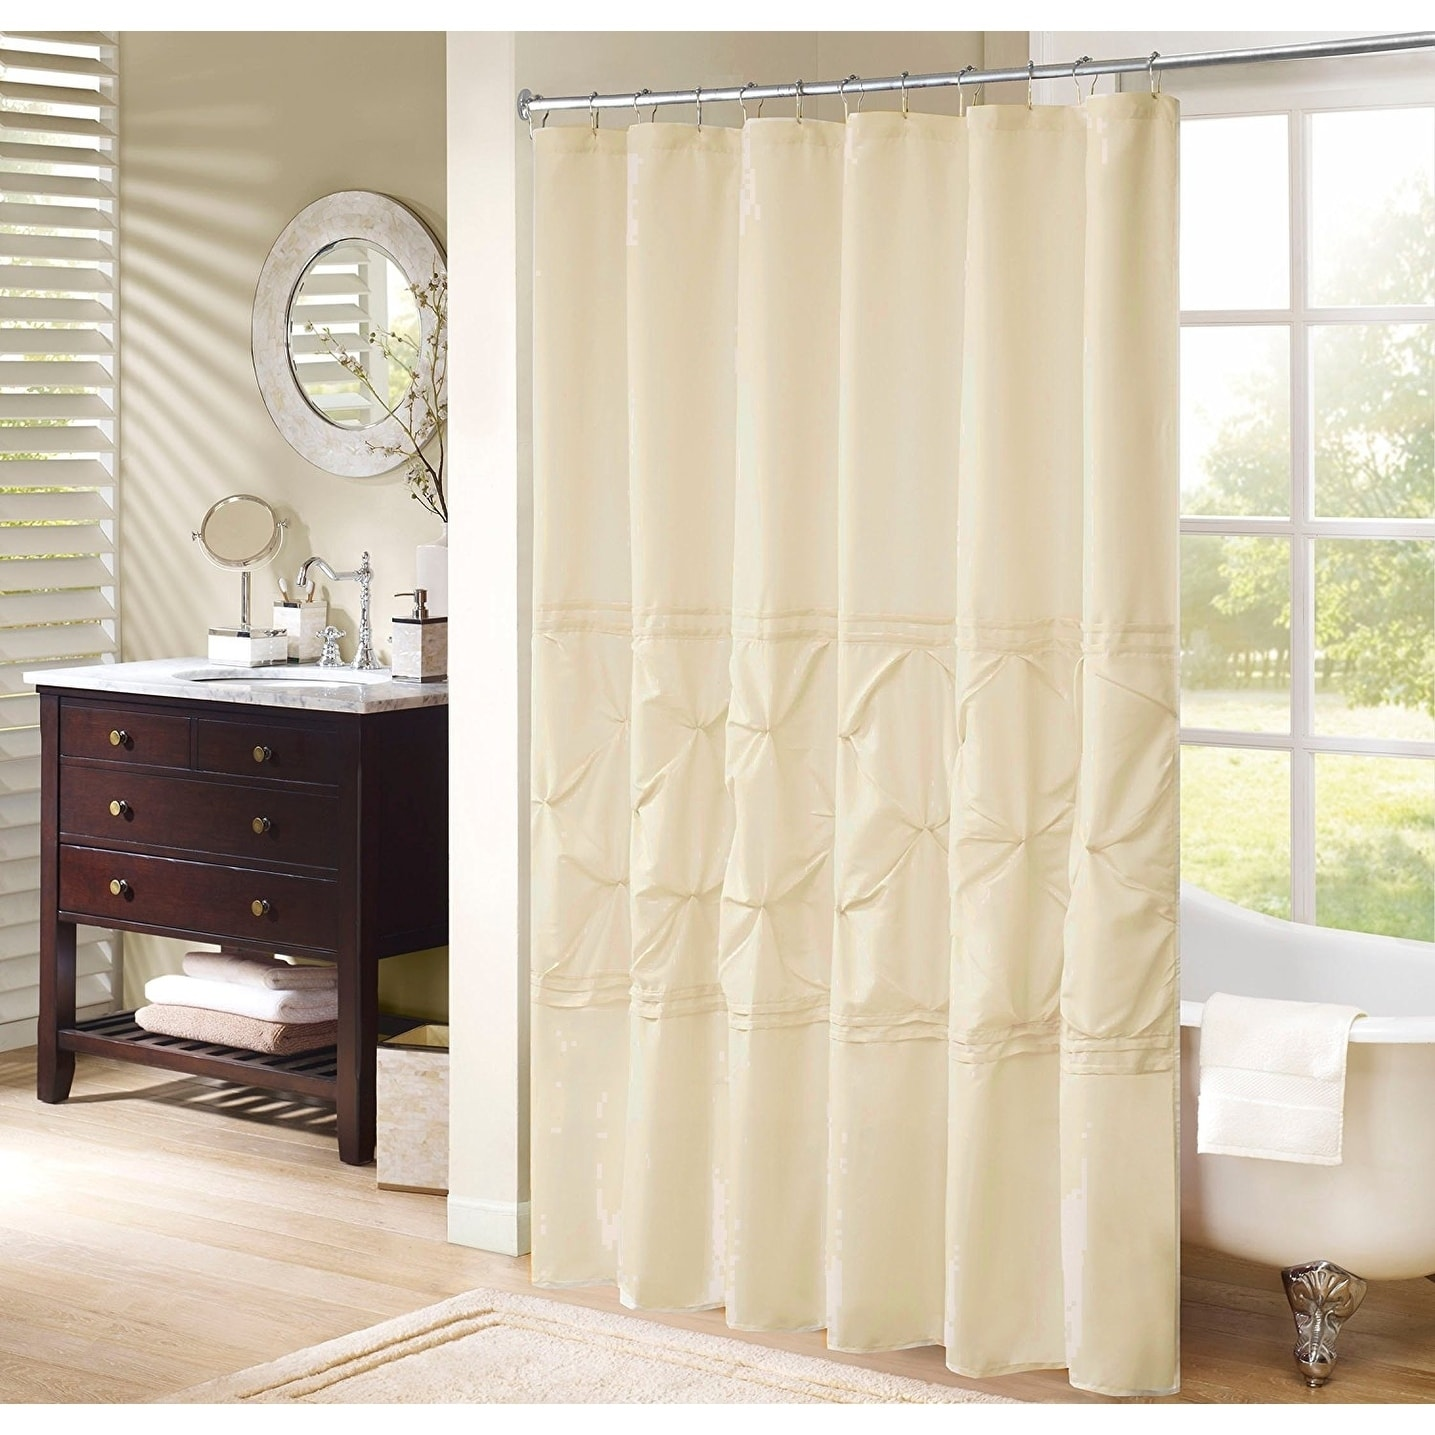 Shop Shower Curtains Online in Canada | Simons | Fabric